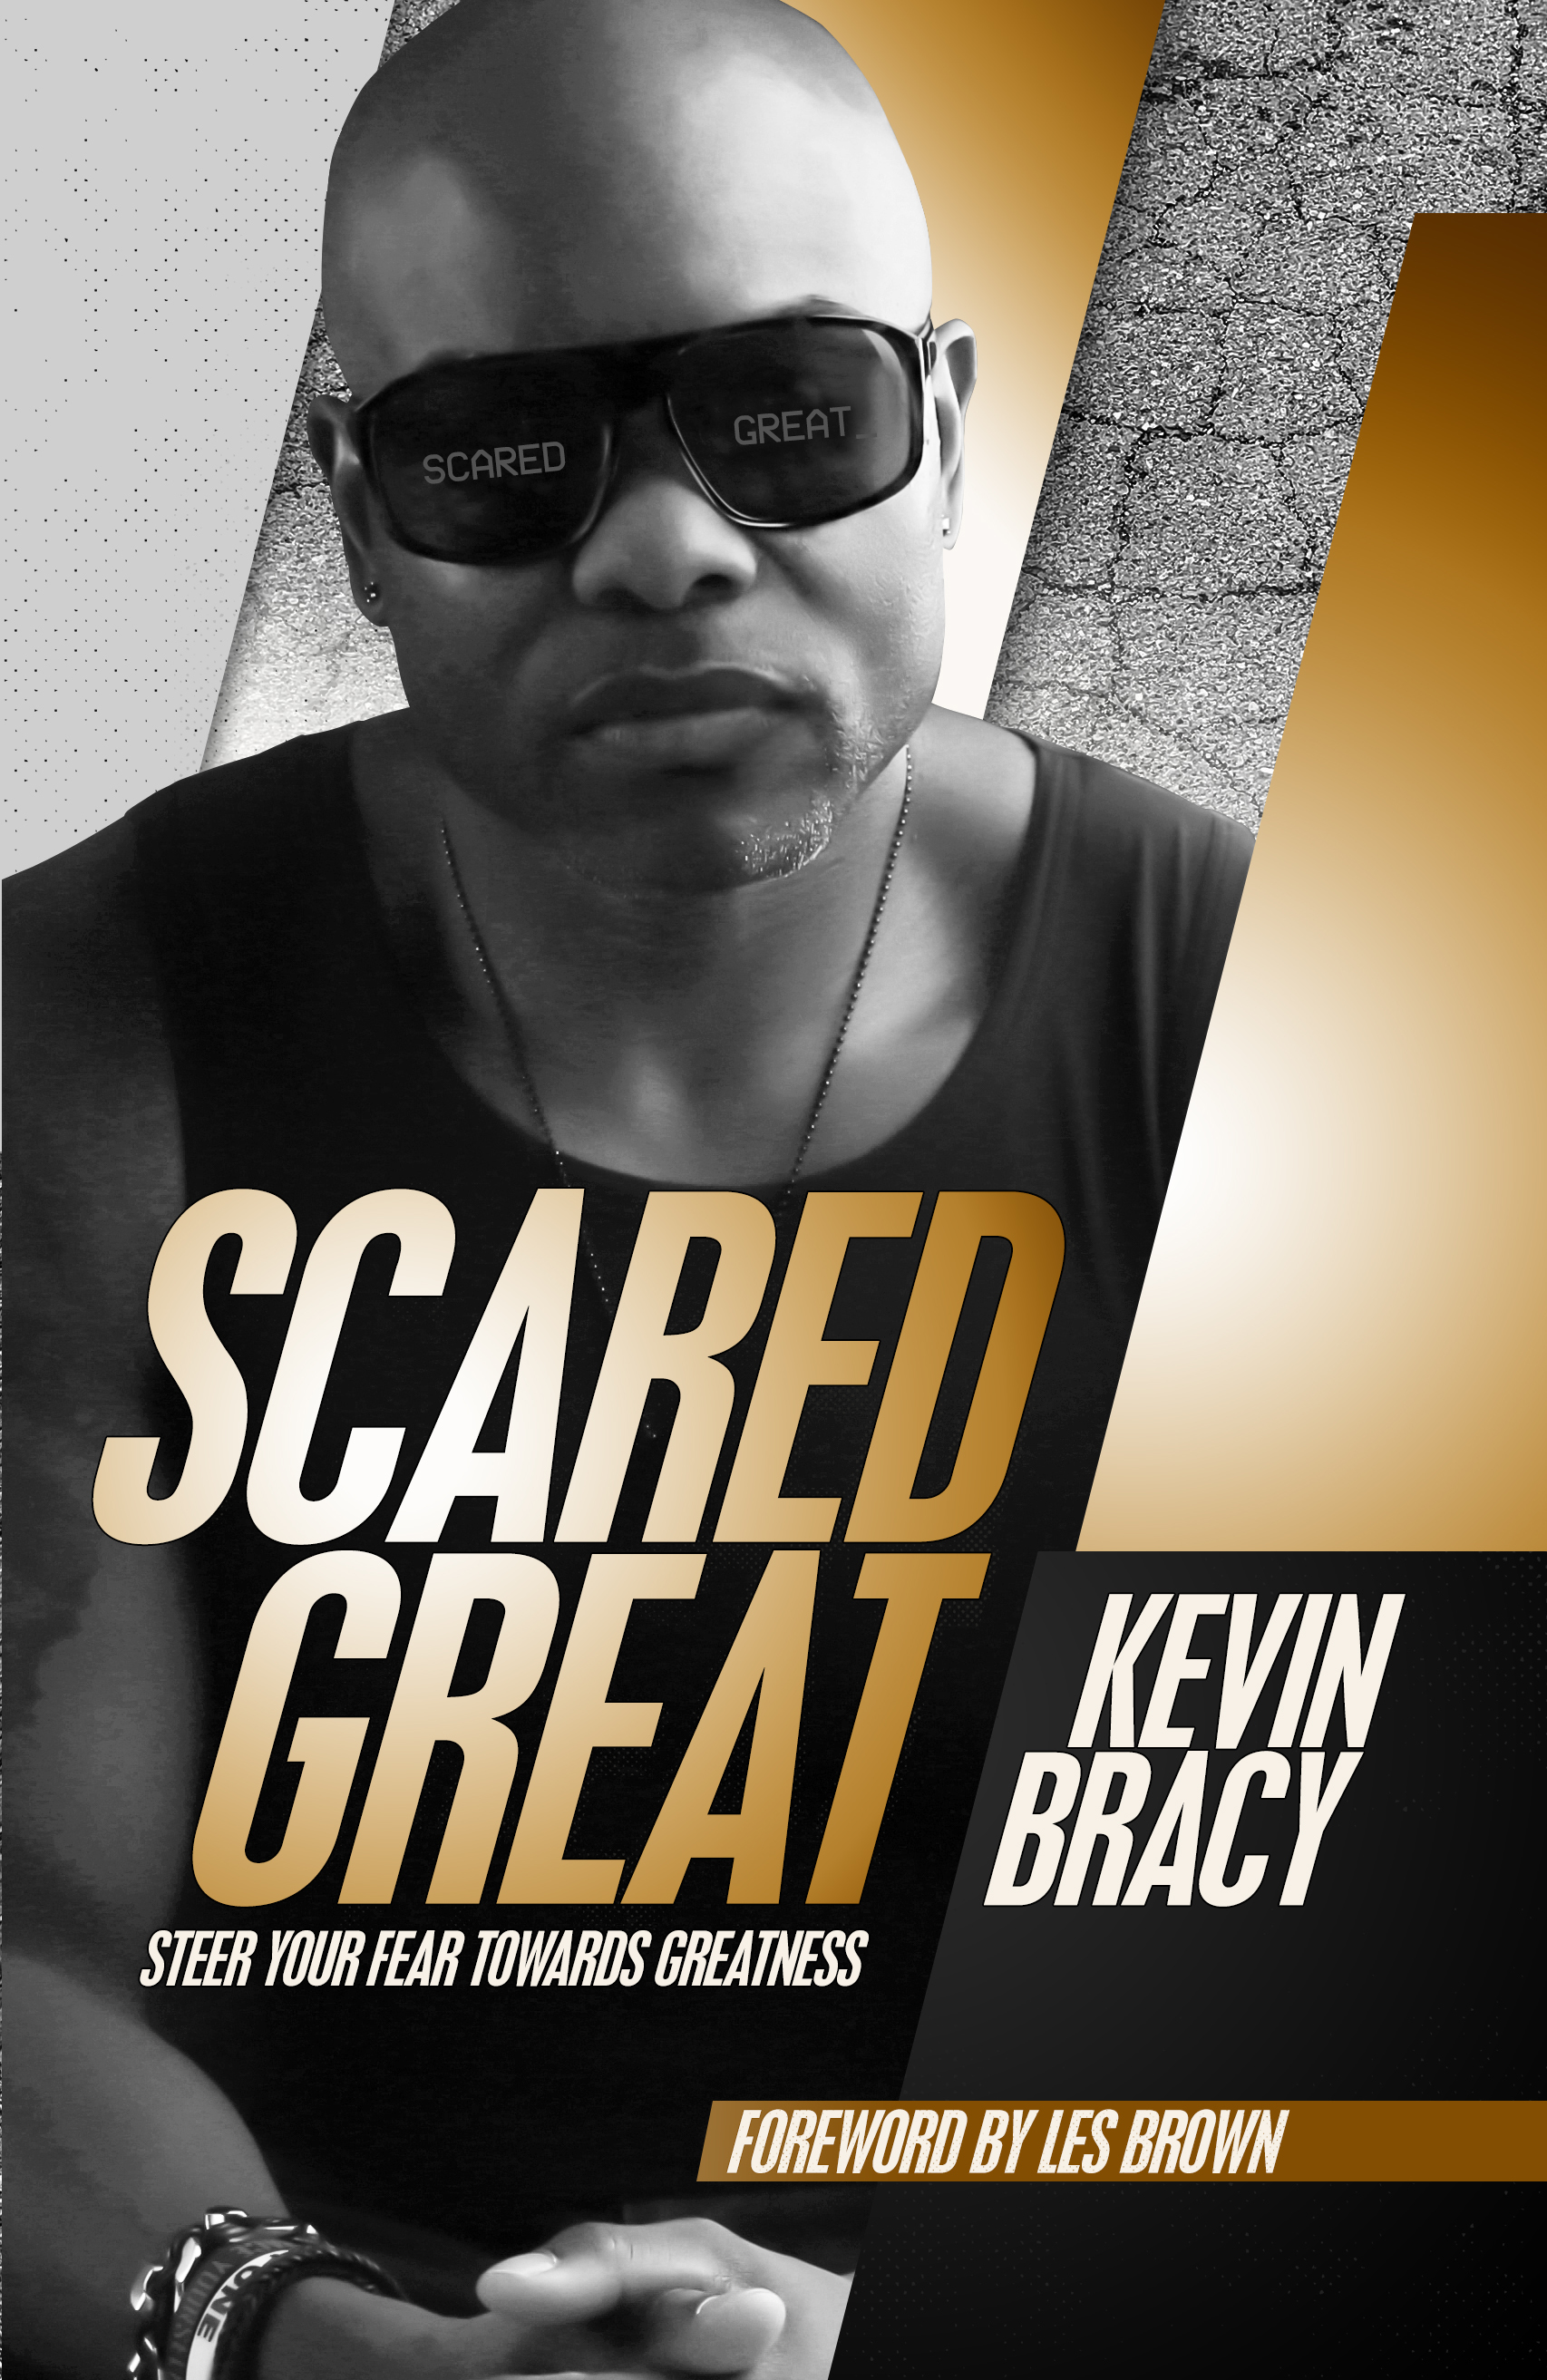 Scared Great - Steer Your Fear Towards Greatness 978-09771596